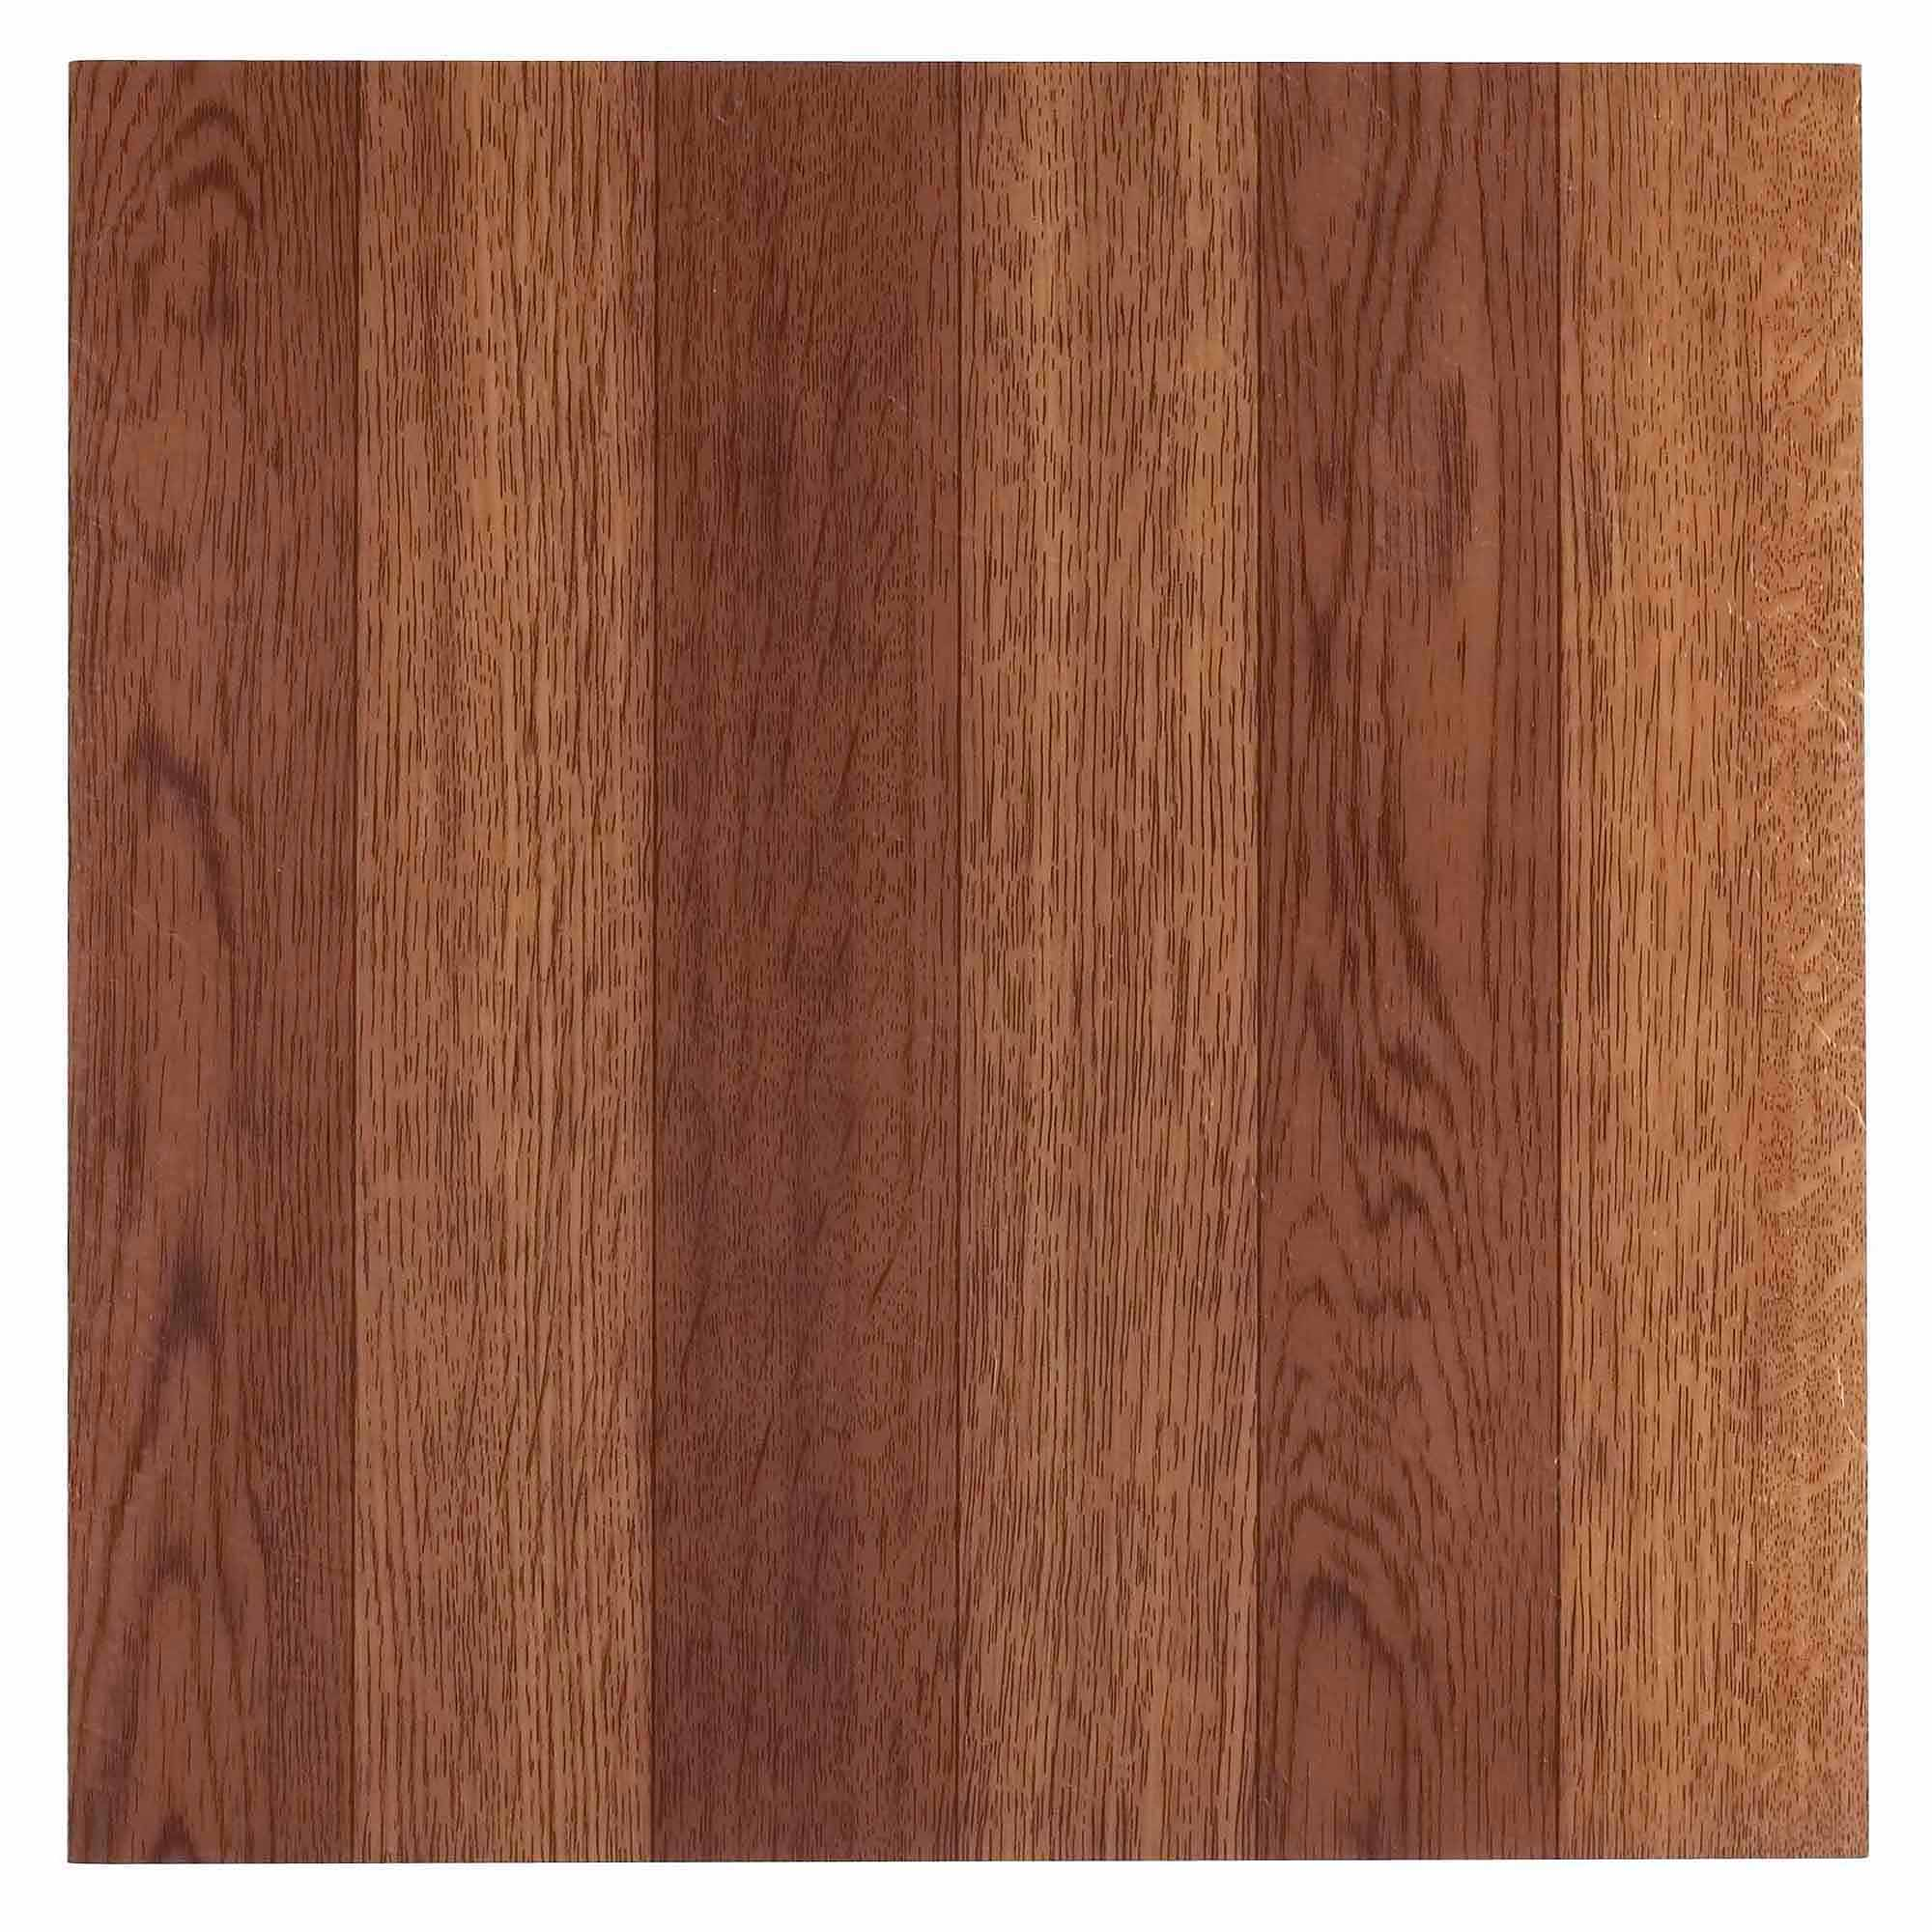 NEXUS Medium Oak Plank-Look 12x12 Self Adhesive Vinyl Floor Tile - 20 Tiles/20 Sq.Ft.